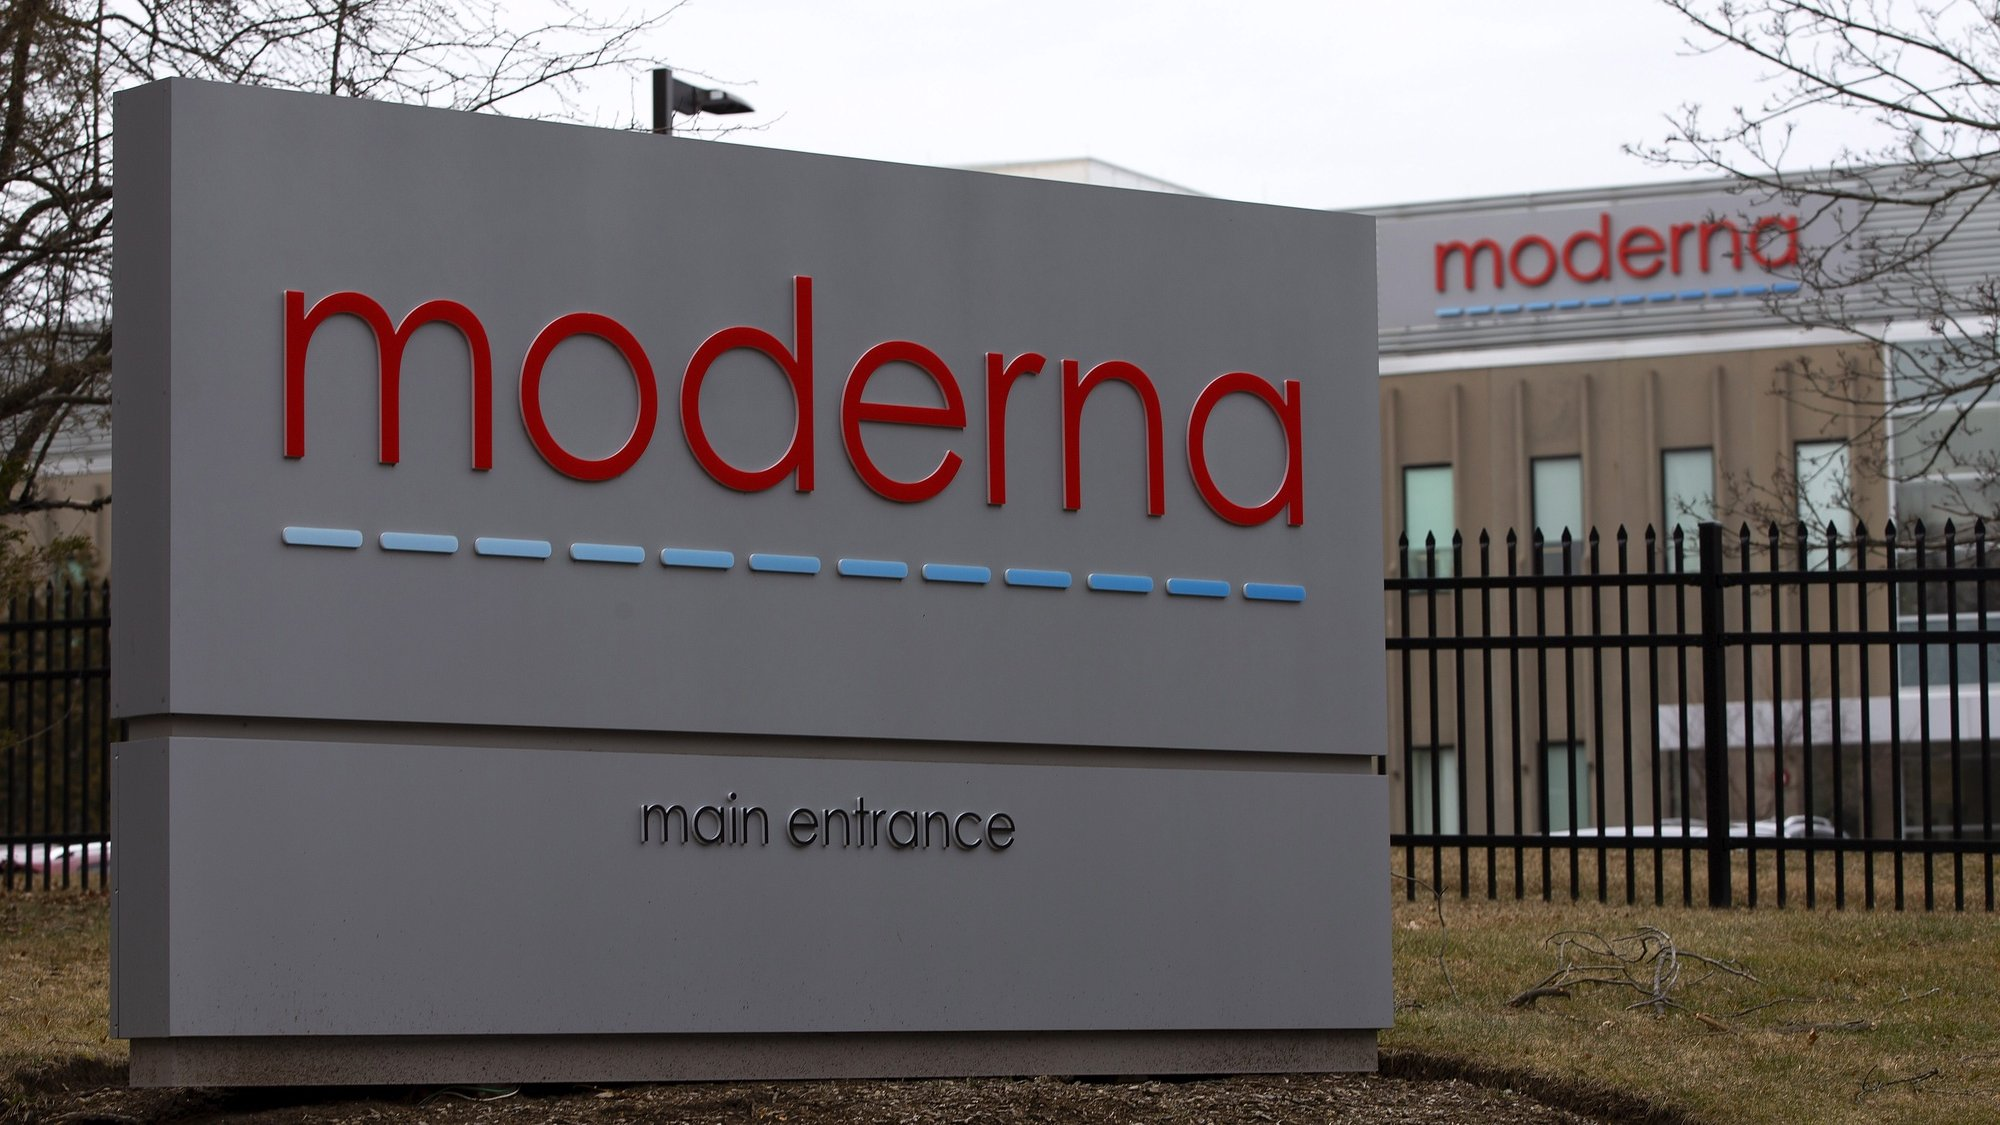 epa08852847 (FILE) - Signs at the main entrance for the biotech firm Moderna, are seen outside the company's Norwood facilities in Norwood, Massachusetts, USA 25 February 2020 (reissued 30 November 2020). US Biotech firm Moderna Inc.is filing for US regulatory approval of its coronavirus vaccine so that it can be recommended for widespread use, the company announced 30 November 2020.  EPA/CJ GUNTHER